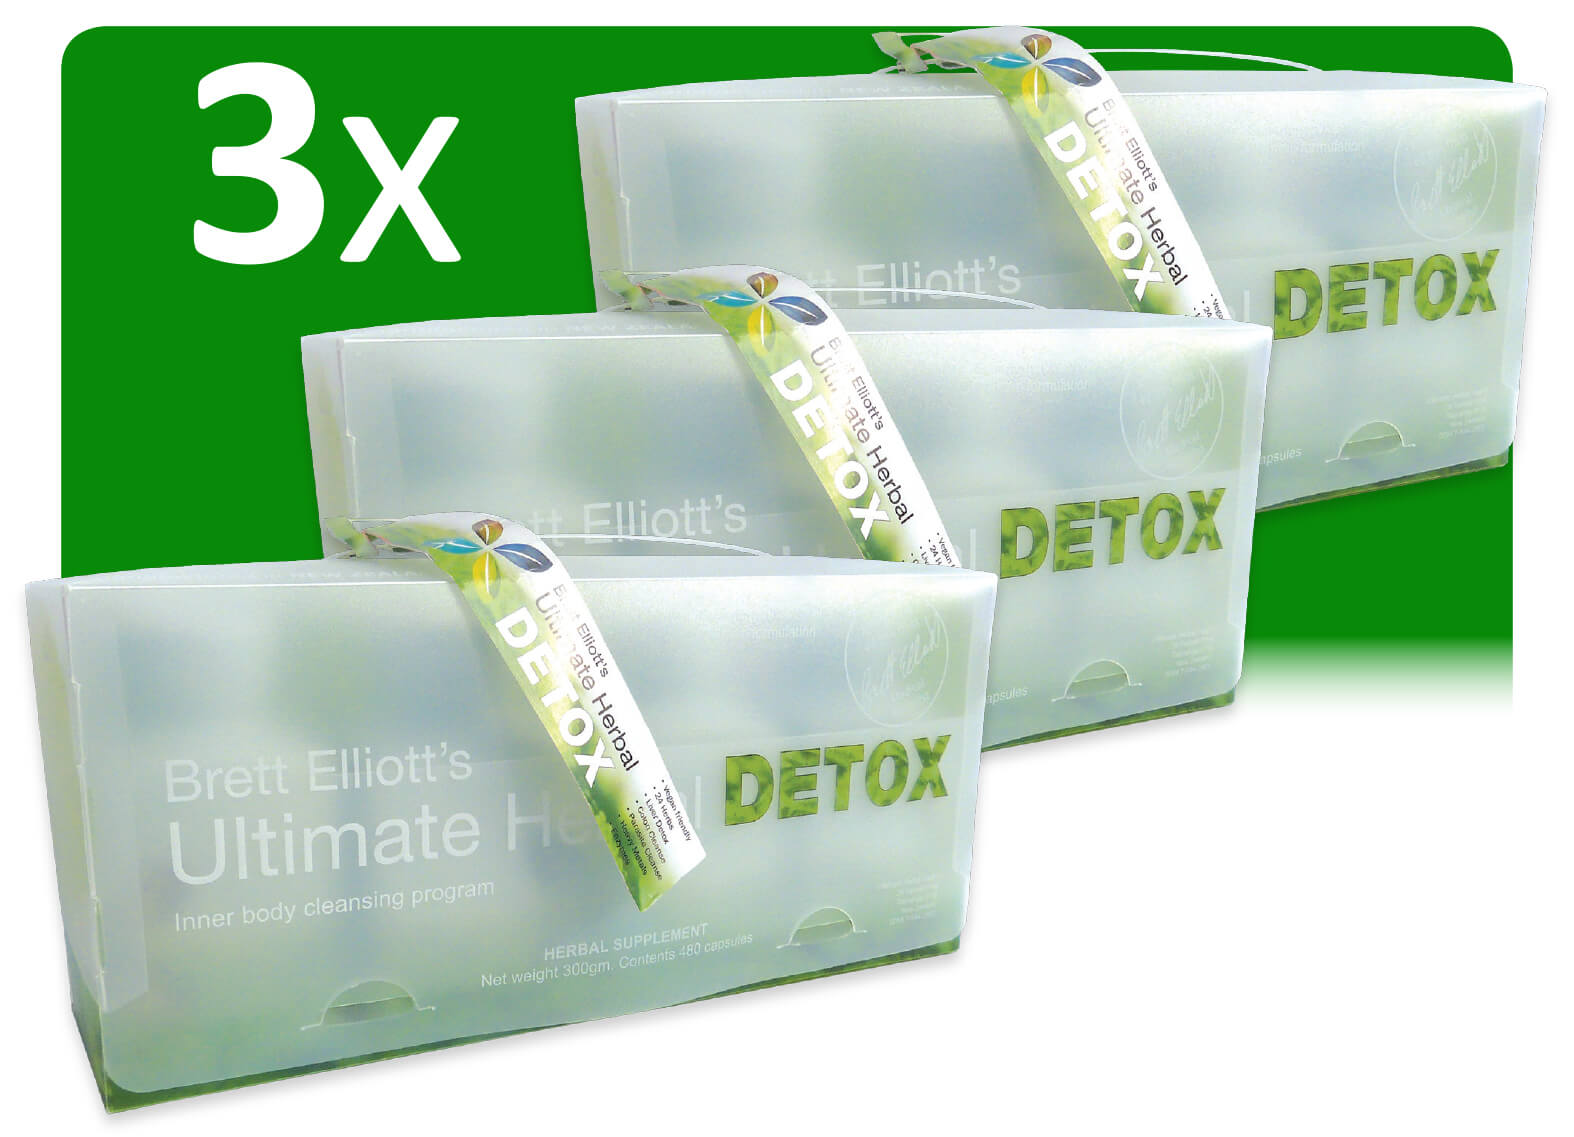 3 x Ultimate Herbal Detox programs